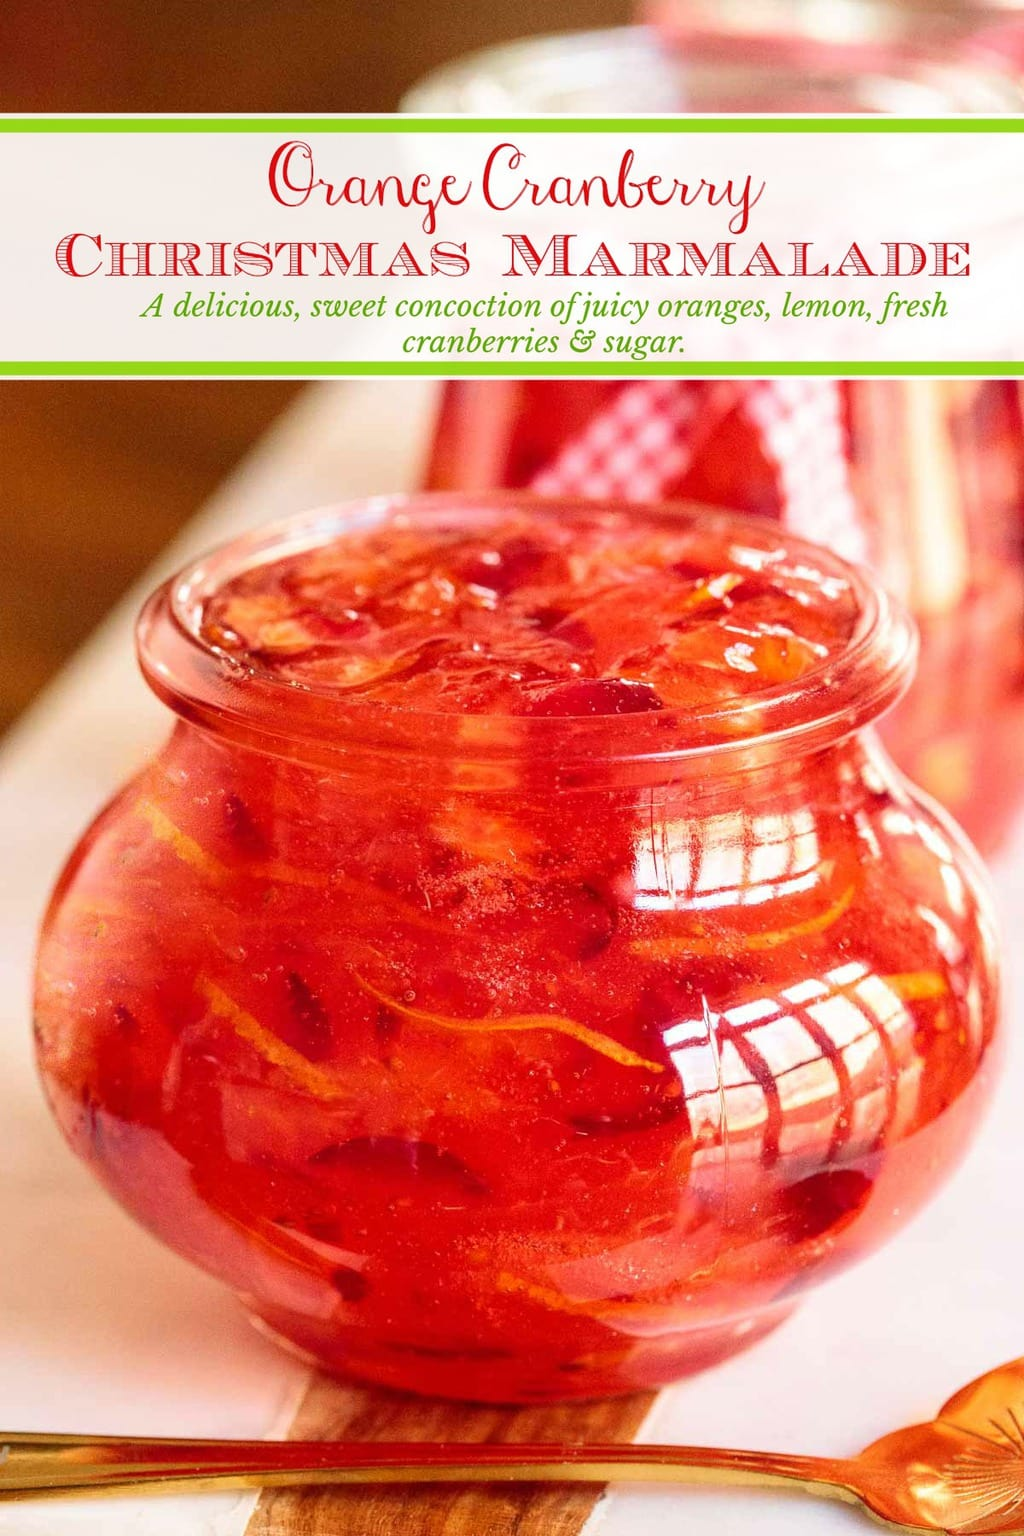 A delicious, sweet concoction of juicy oranges, lemon, fresh cranberries & sugar, this Easy Christmas Marmalade is fabulous on toast, English muffins, biscuits, yogurt, ice cream... #orangecranberrymarmalade, #easymarmalade, #christmasmarmalade